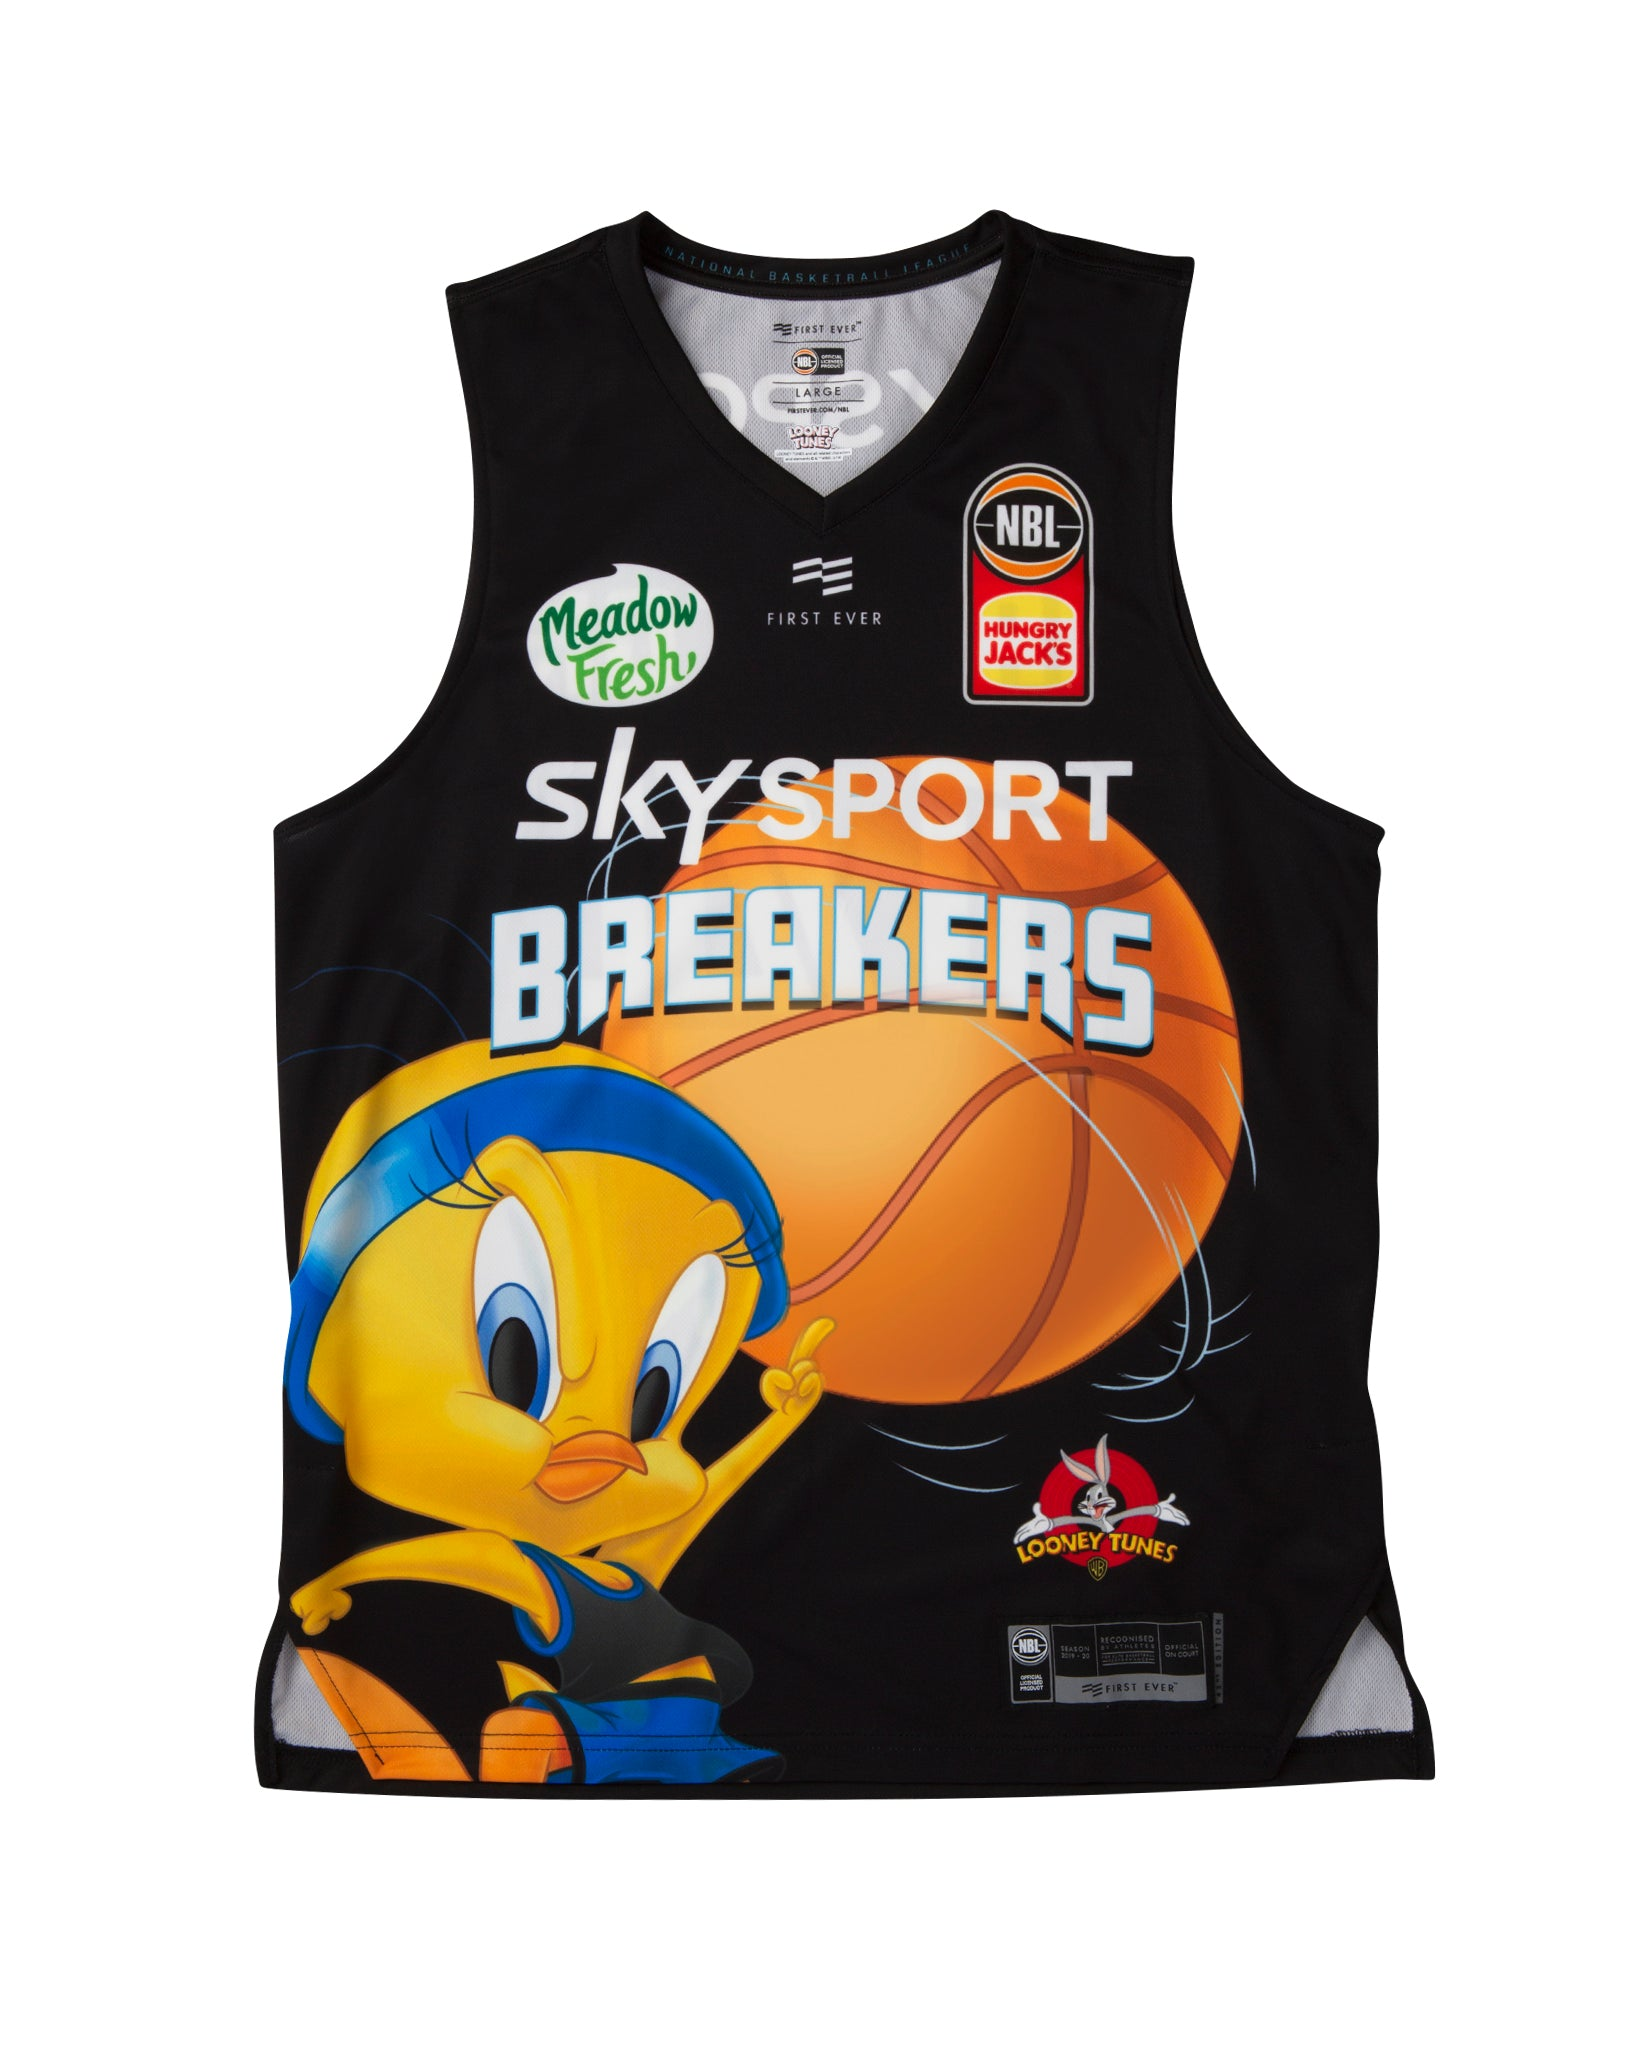 New Zealand Breakers 19/20 Looney Tunes Jersey